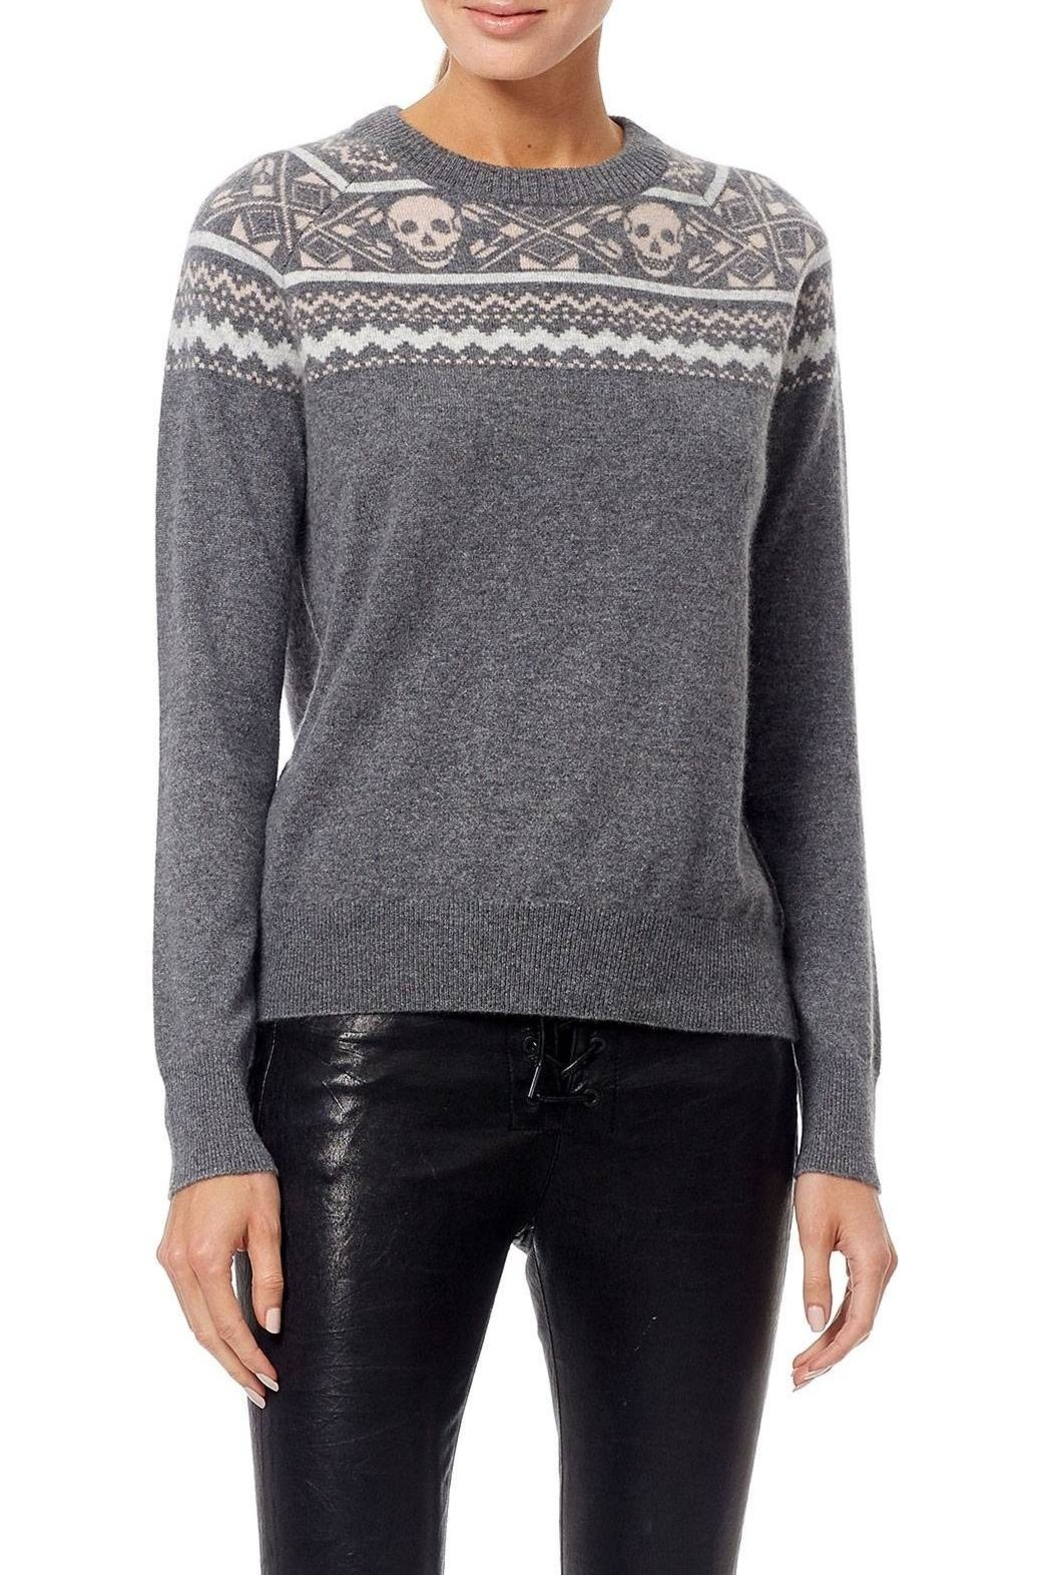 Skull Cashmere Cashmere Miley Sweater - Main Image